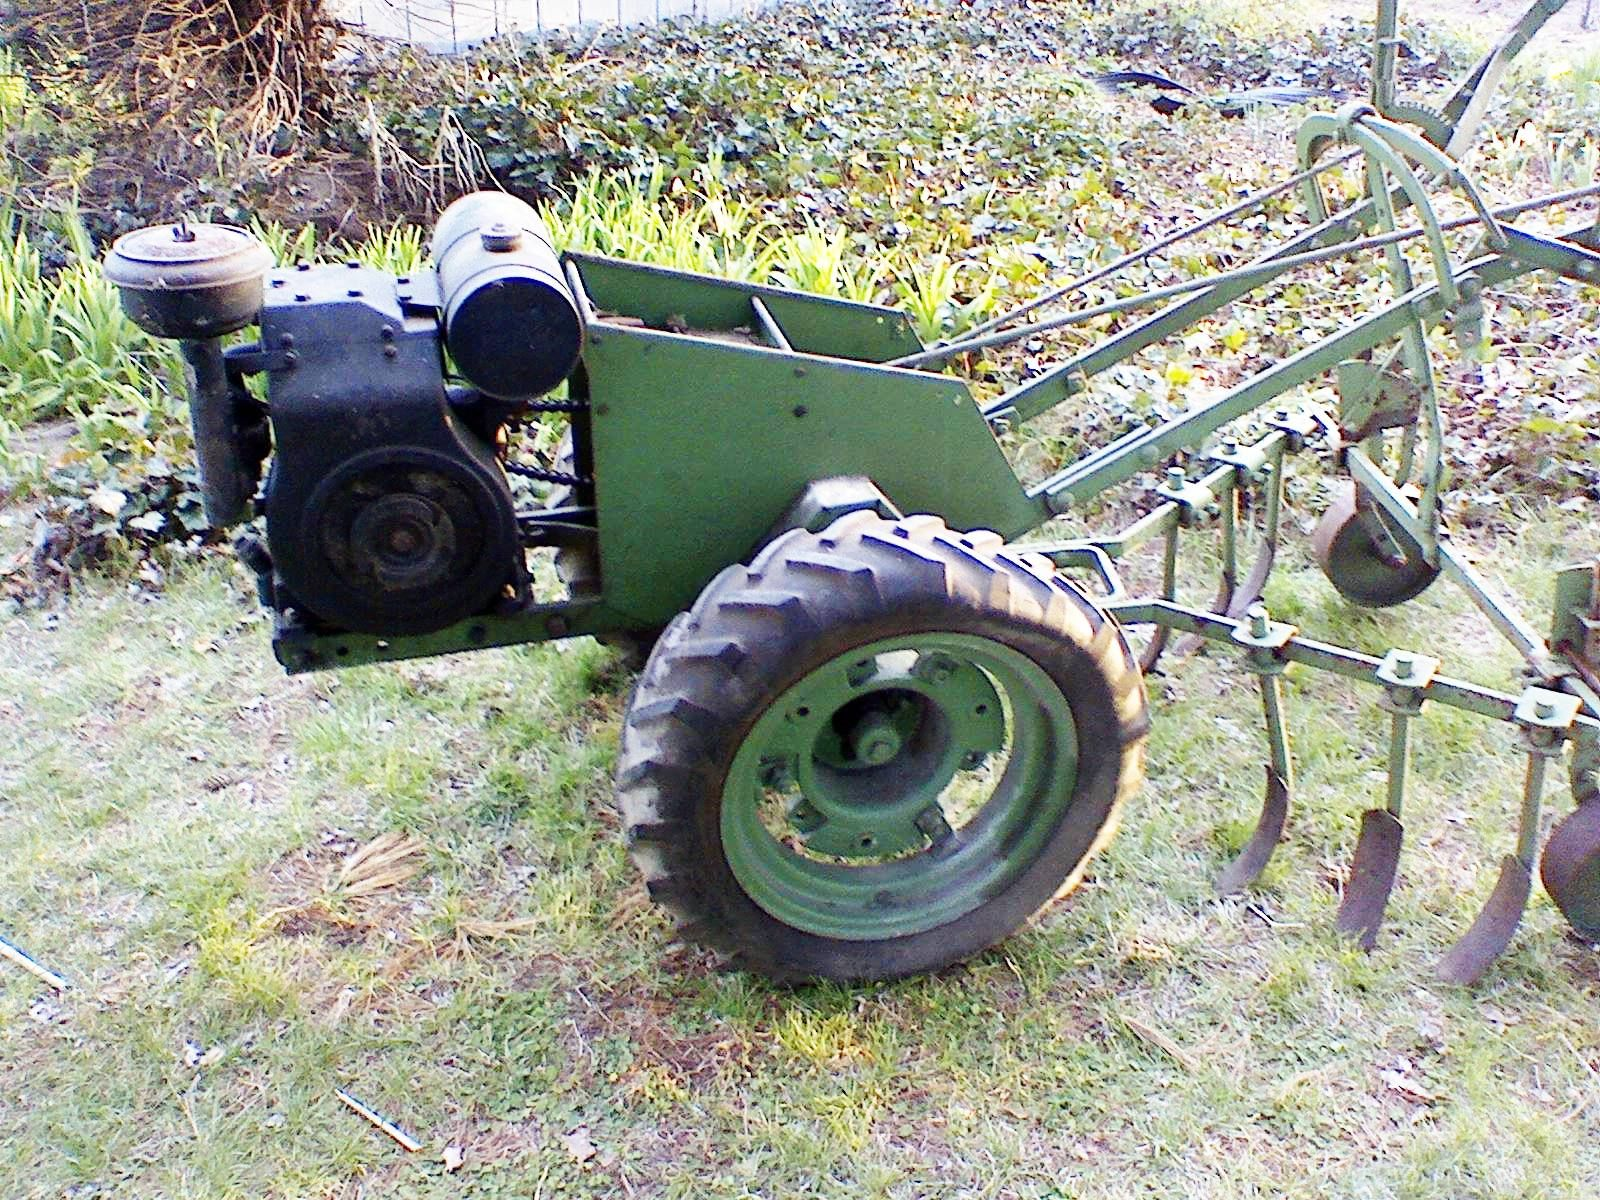 Antique Two Wheel Tractor : Image result for vintage two wheel tractor walk behind